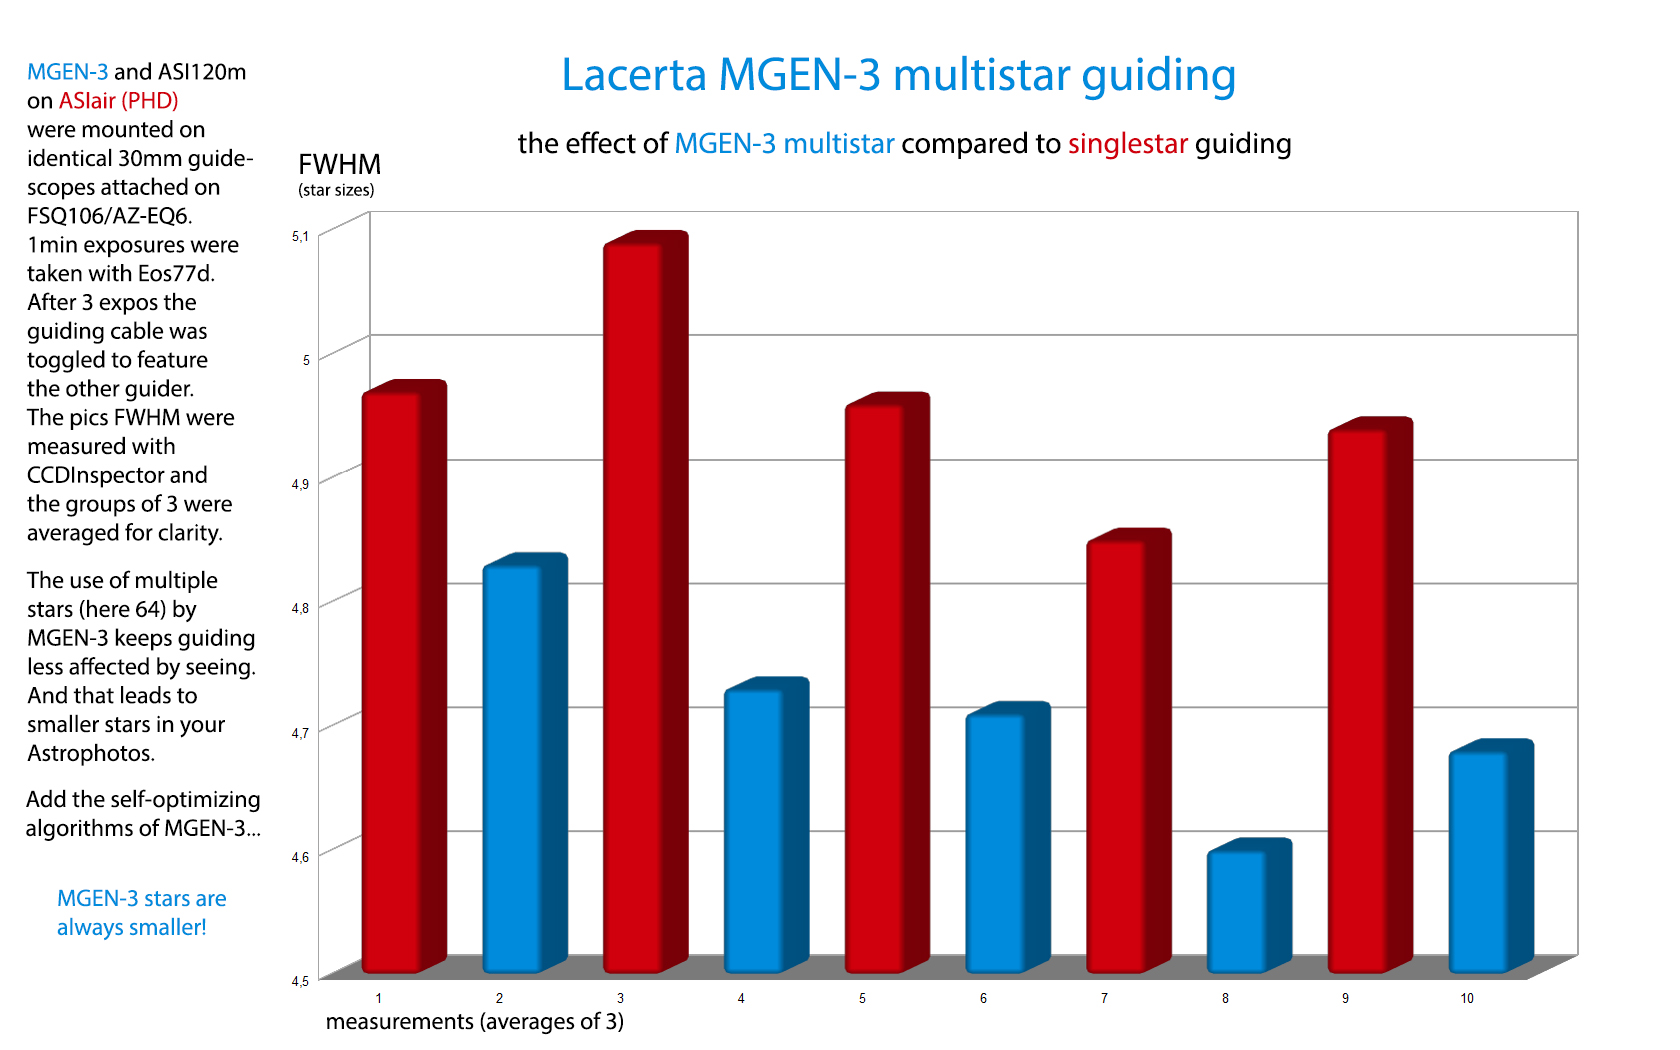 MGEN 3 MGEN3 multistar guiding compared